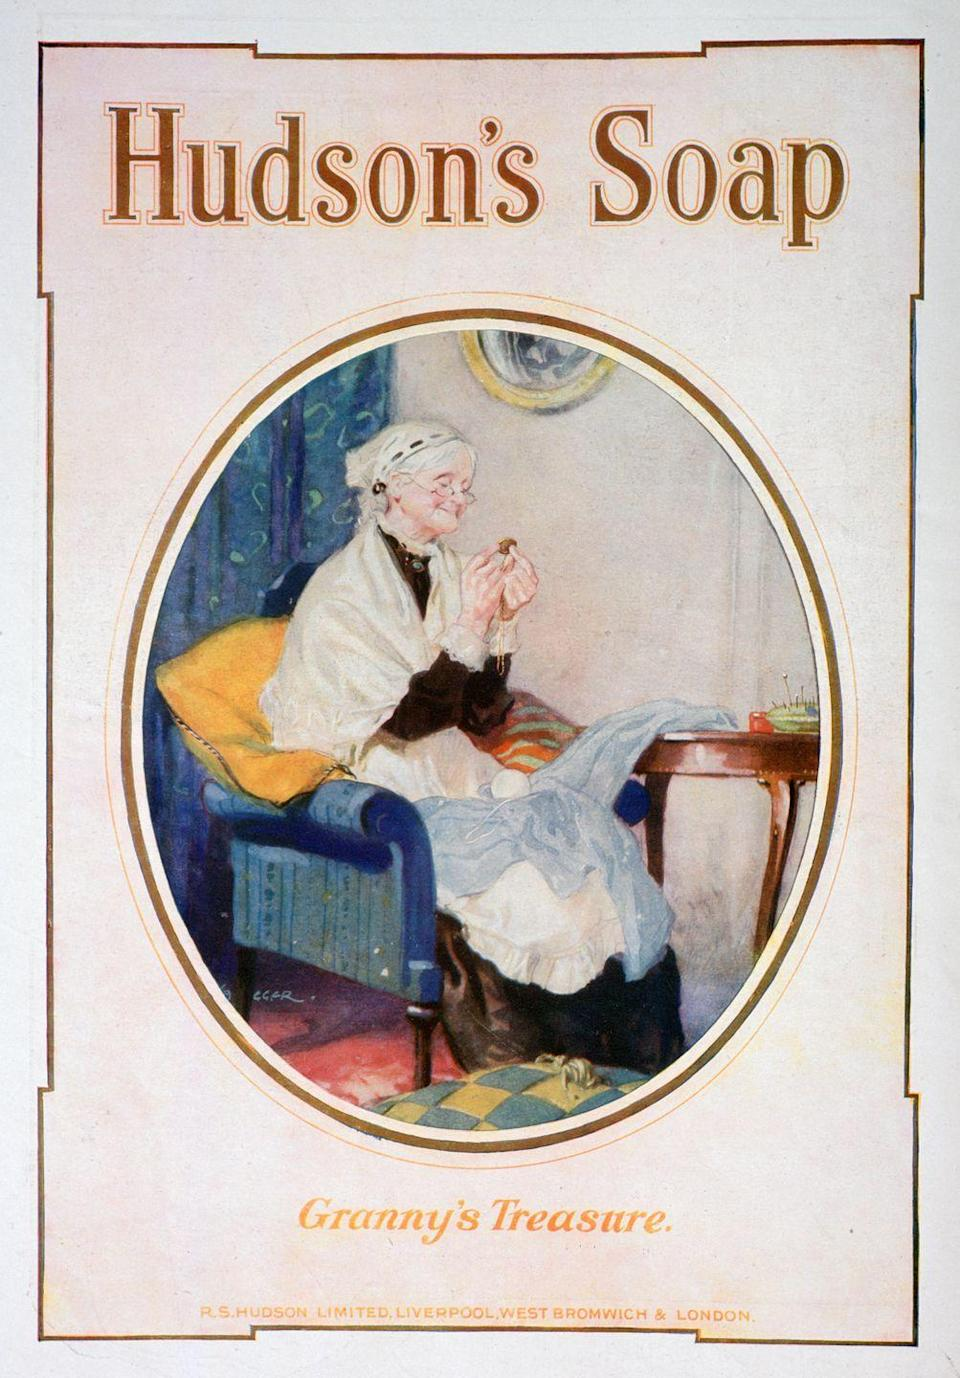 <p>To promote Hudson's soap for the holiday season in 1918, the brand launched a heartfelt advert featuring an adoring Granny in her sewing chair. <br></p>